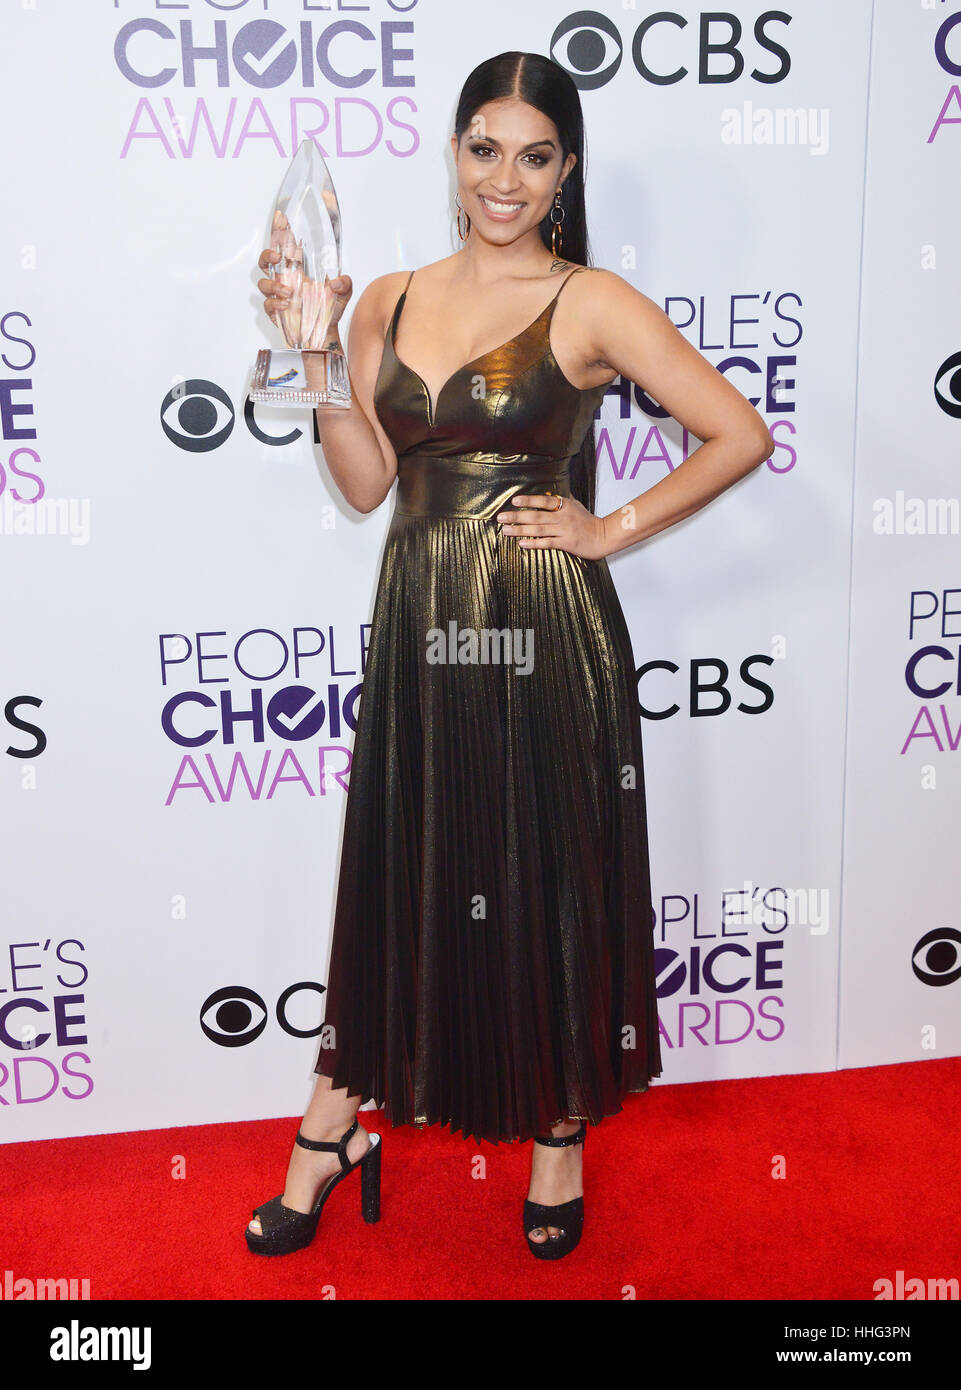 Lilly Singh 269 arrivando al People's Choice Awards 2017 presso il Microsoft Theatre di Los Angeles. Il 18 gennaio Foto Stock